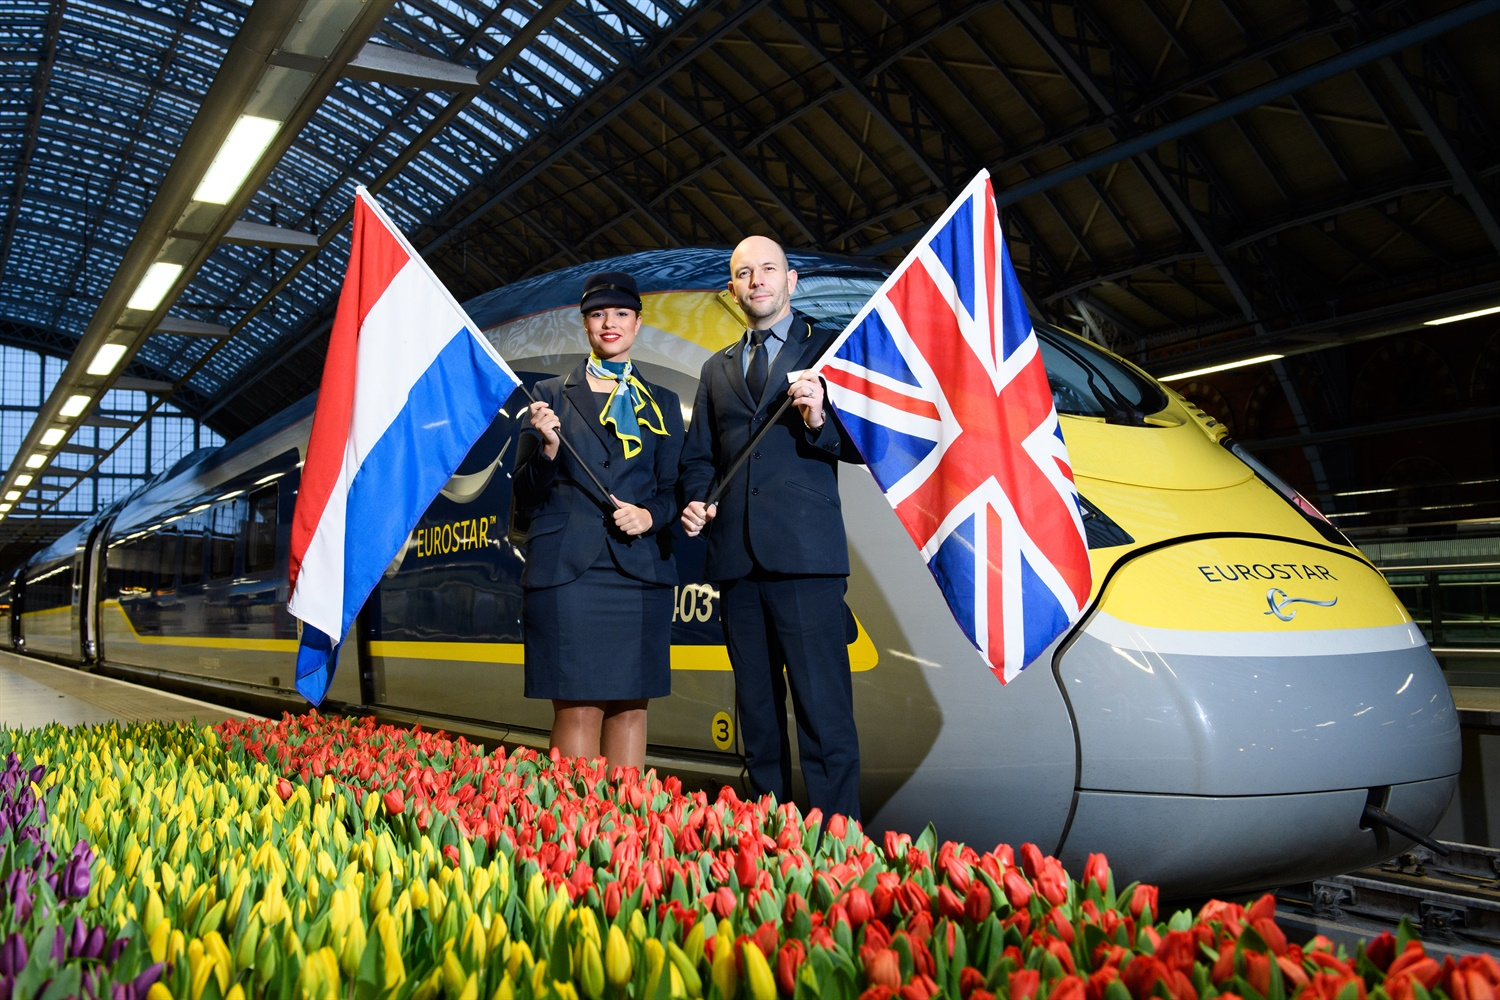 First direct London-Amsterdam service marks 'exciting new chapter' for Eurostar